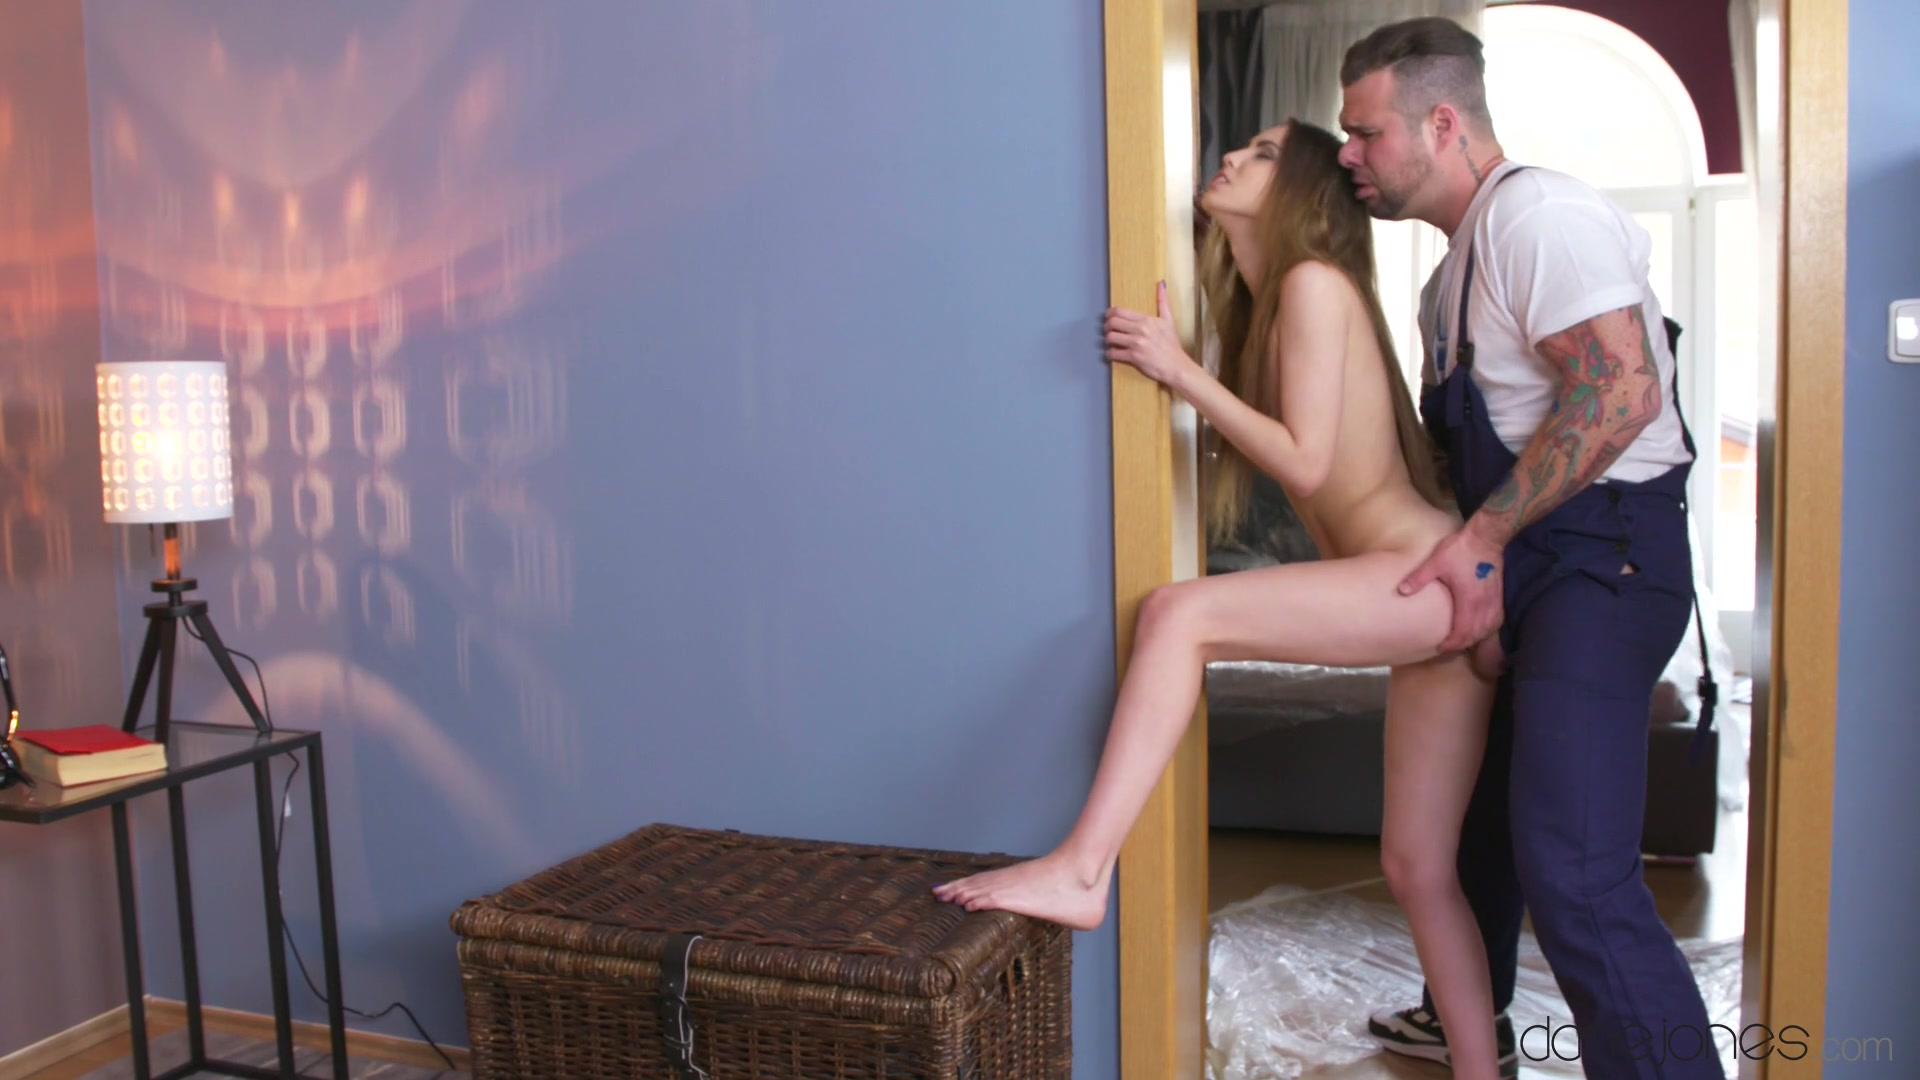 Elle Rose, Martin Gun - Handyman Fucks Cute Girl Home Alone